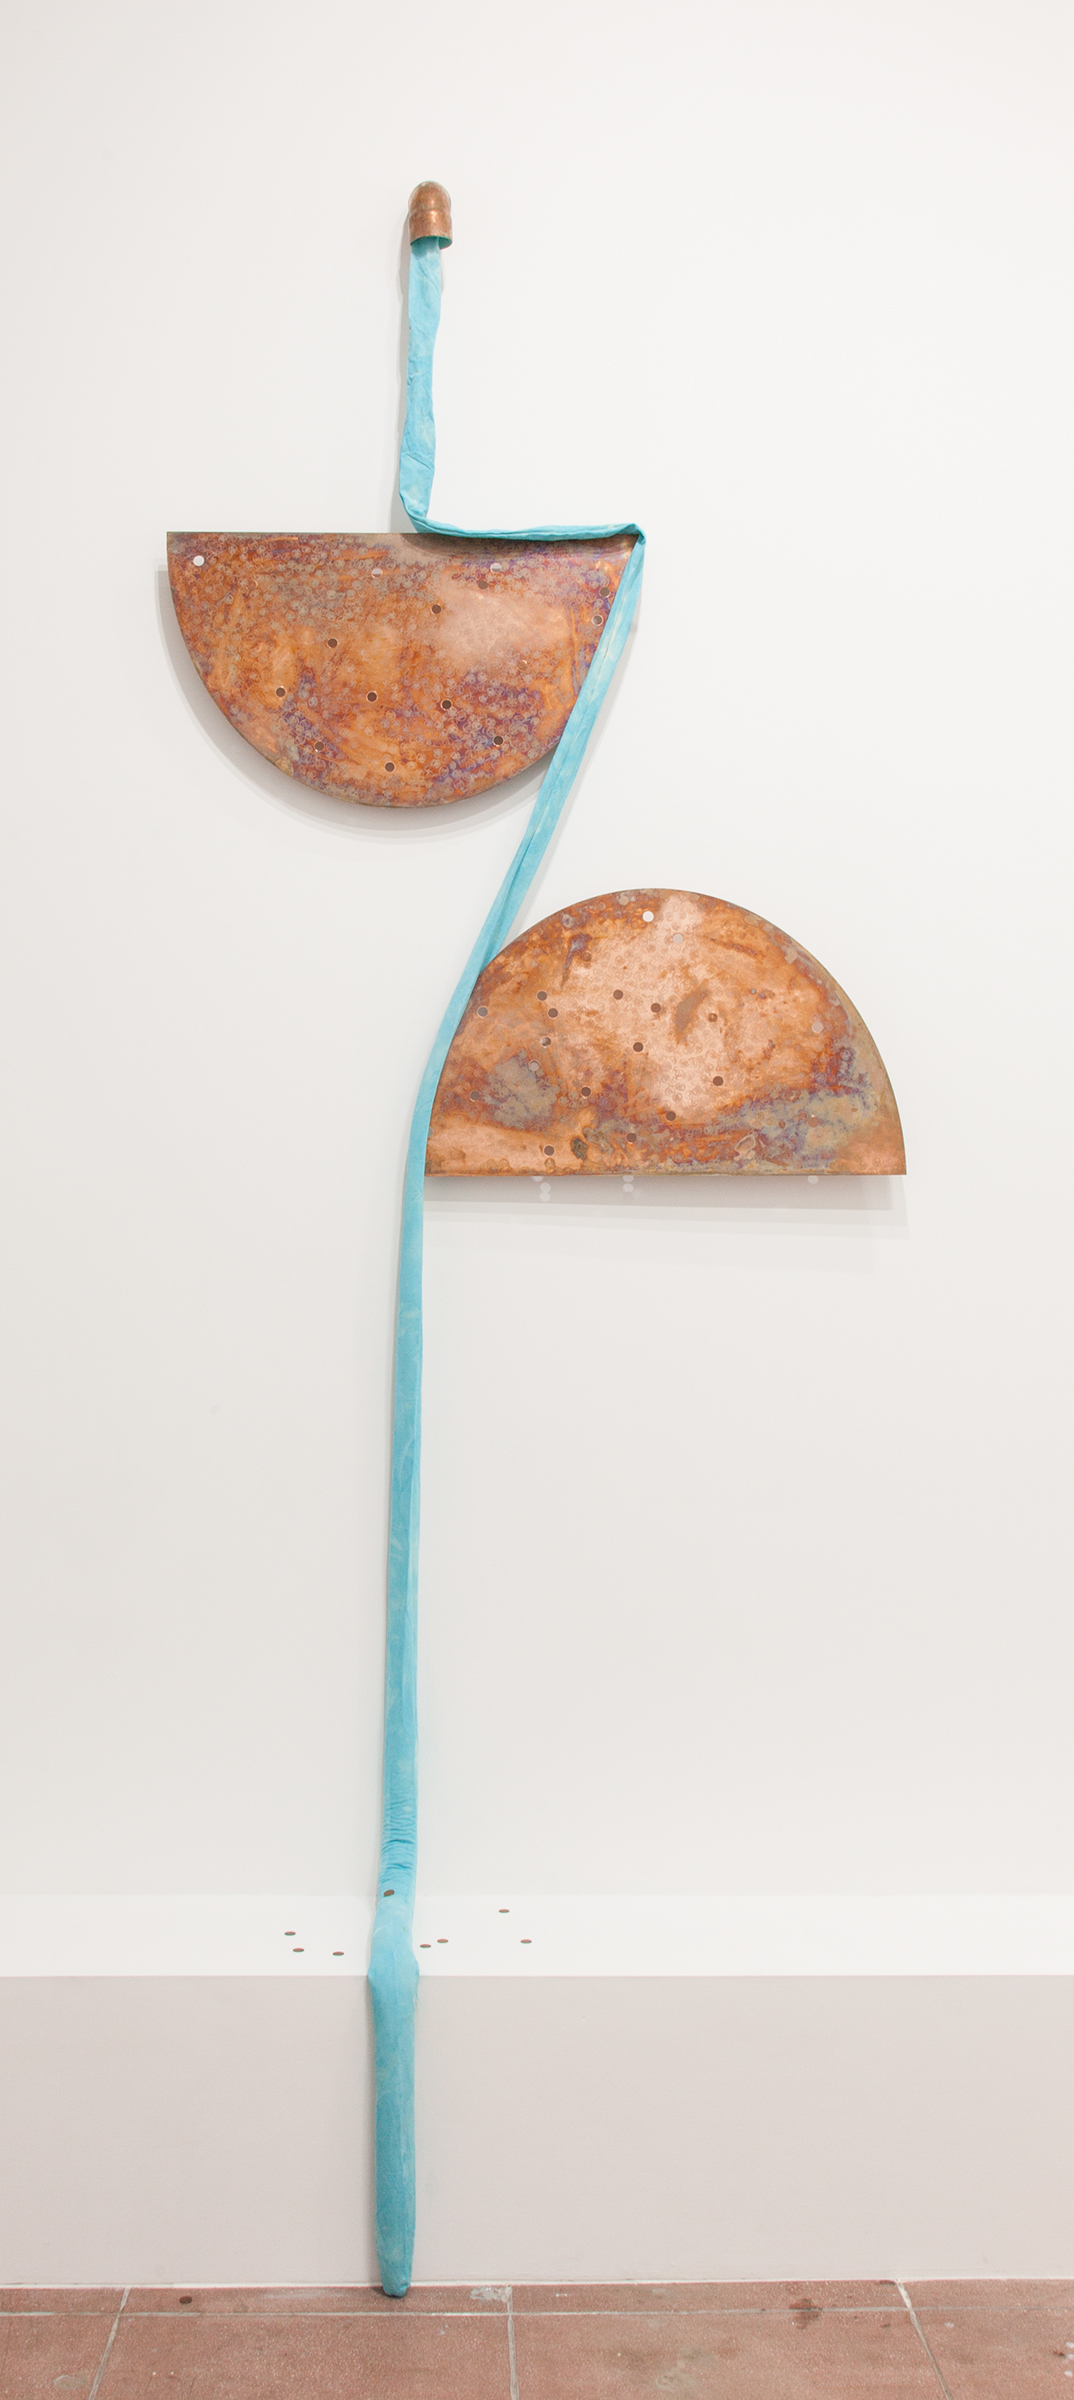 Jory Rabinovitz, EBB2 (B), 2014, melted pennies and un-melted pennies, Verdigris, fabric, rain water, Dimensions variable